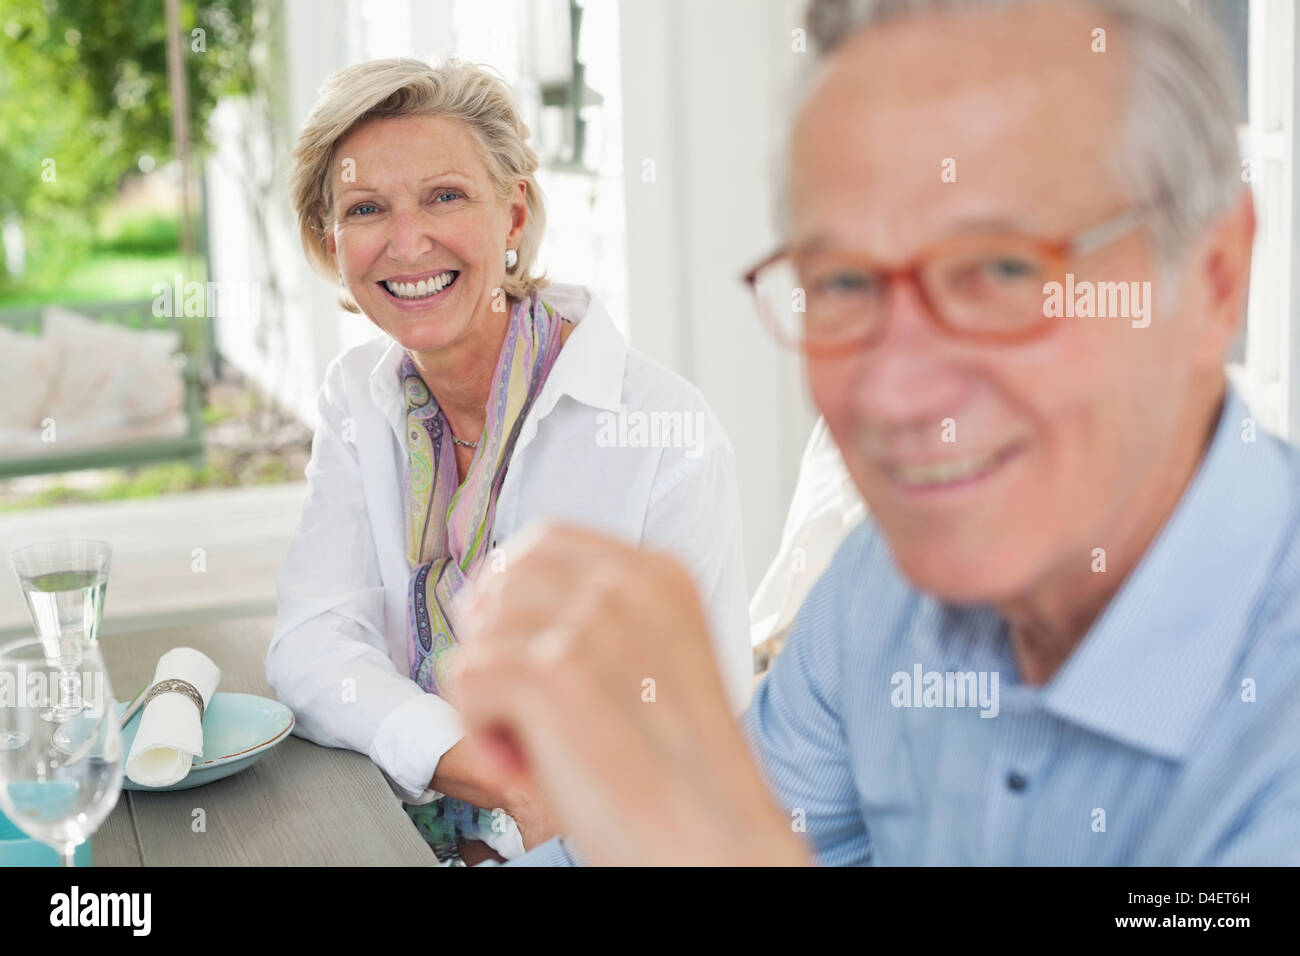 Couple smiling together at table - Stock Image